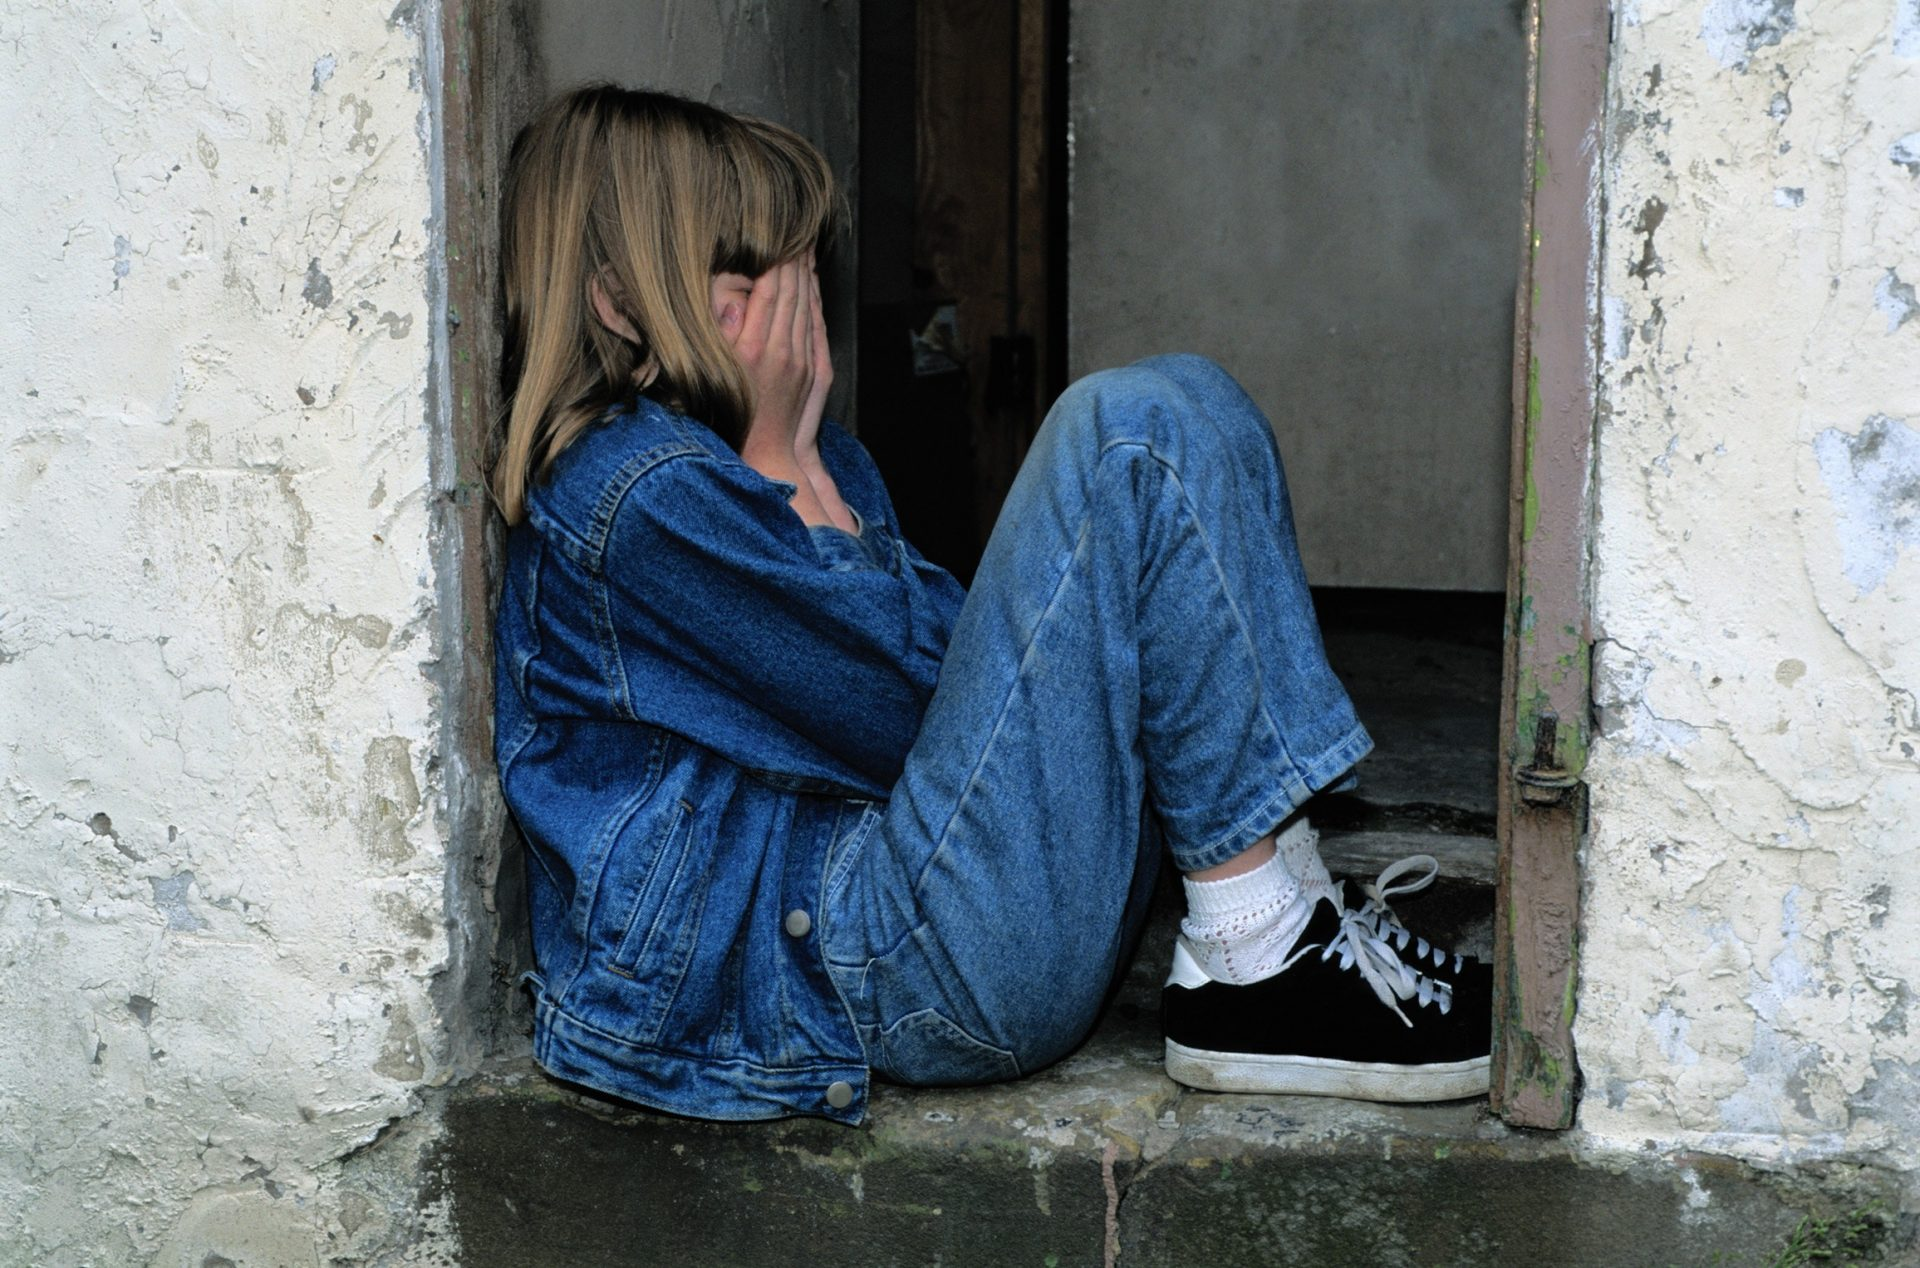 Child in a doorway crying